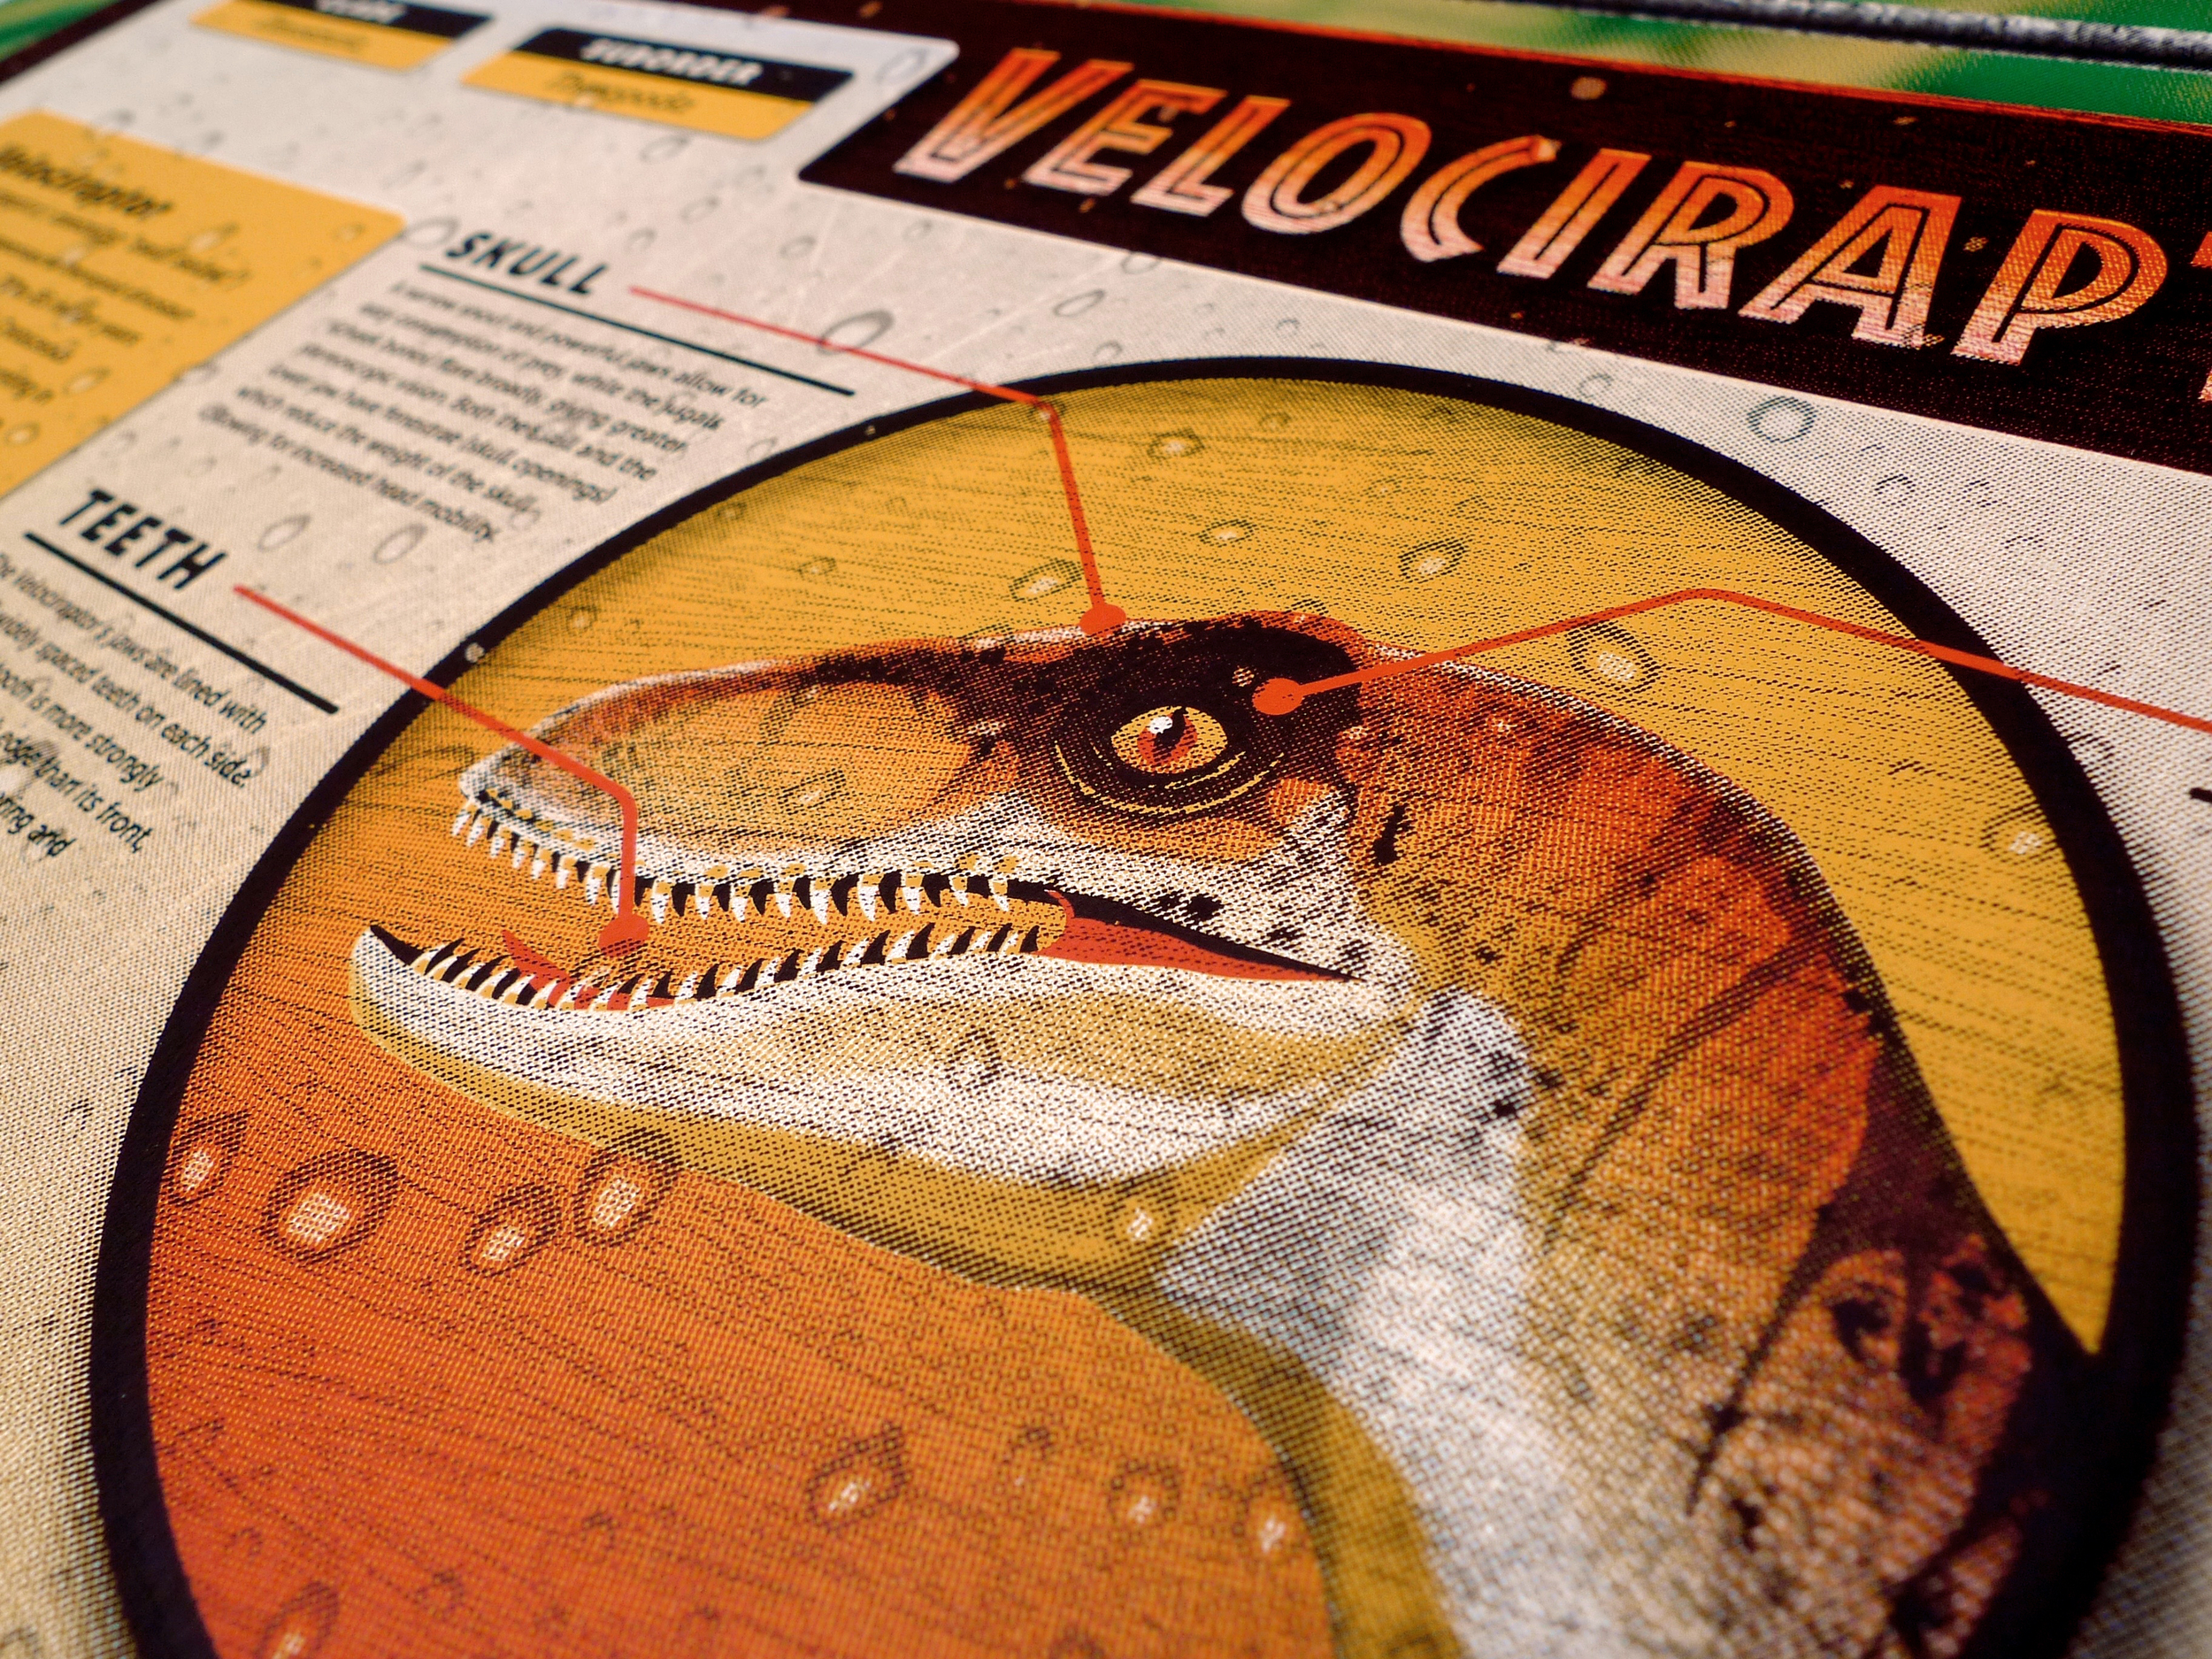 Jurassic Park: Velociraptor Poster by DKNG